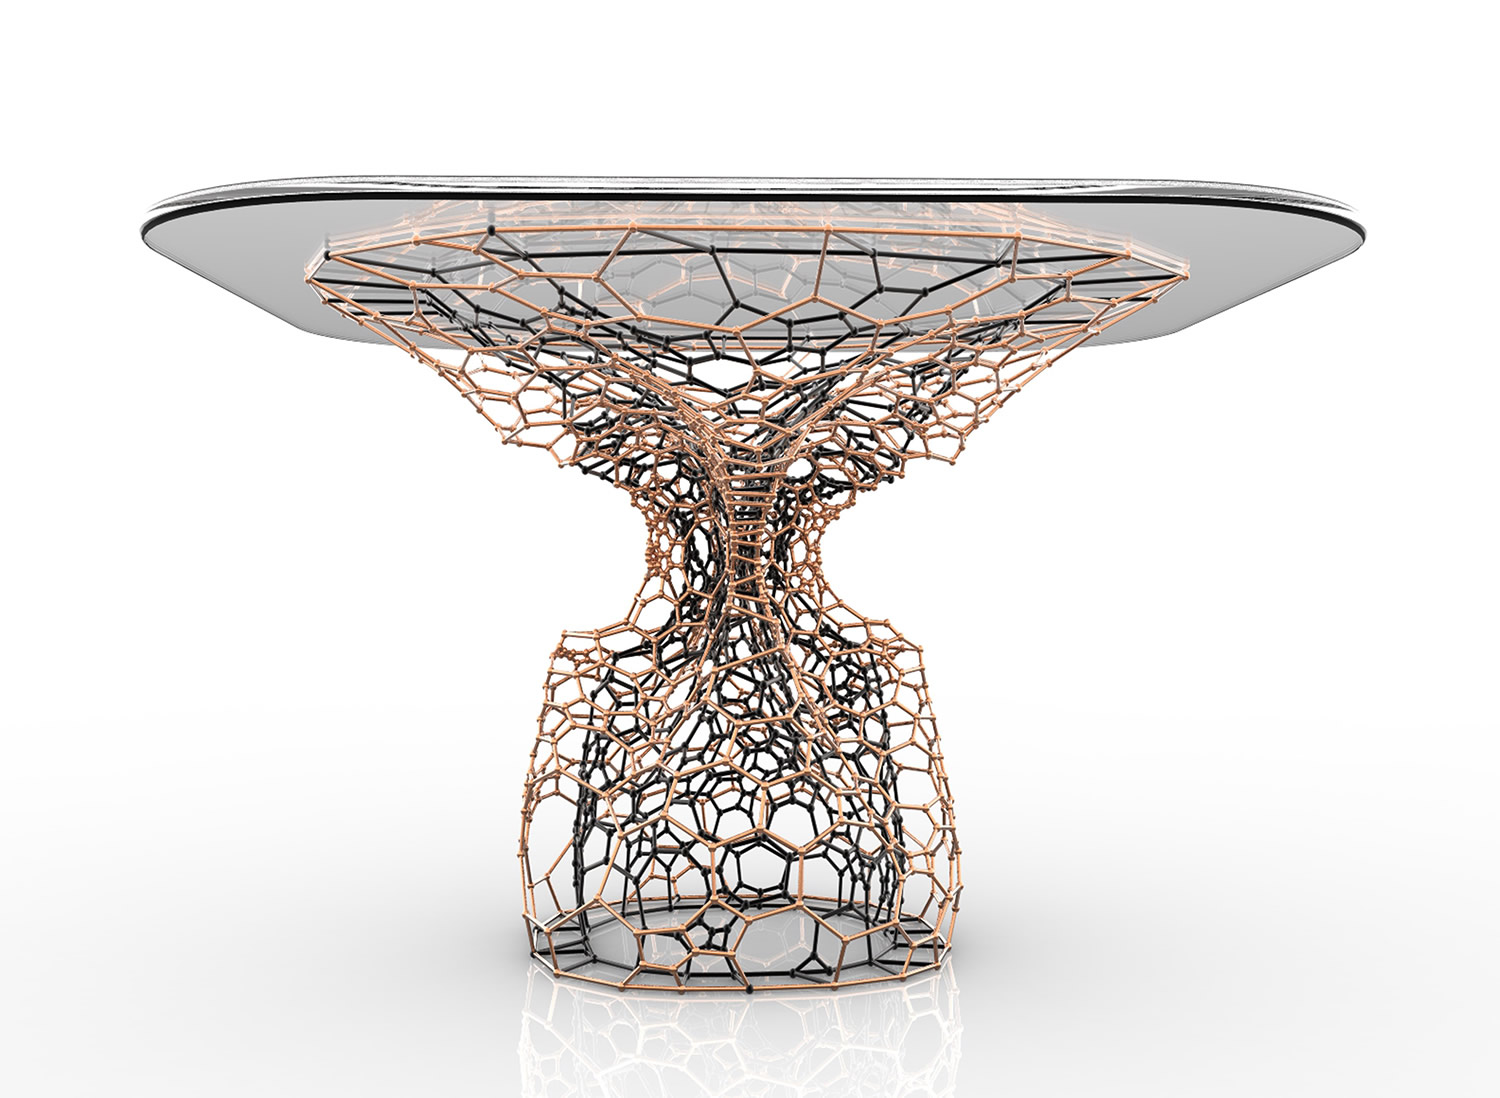 Cellular Table Coffee Table by Onur Ozkaya